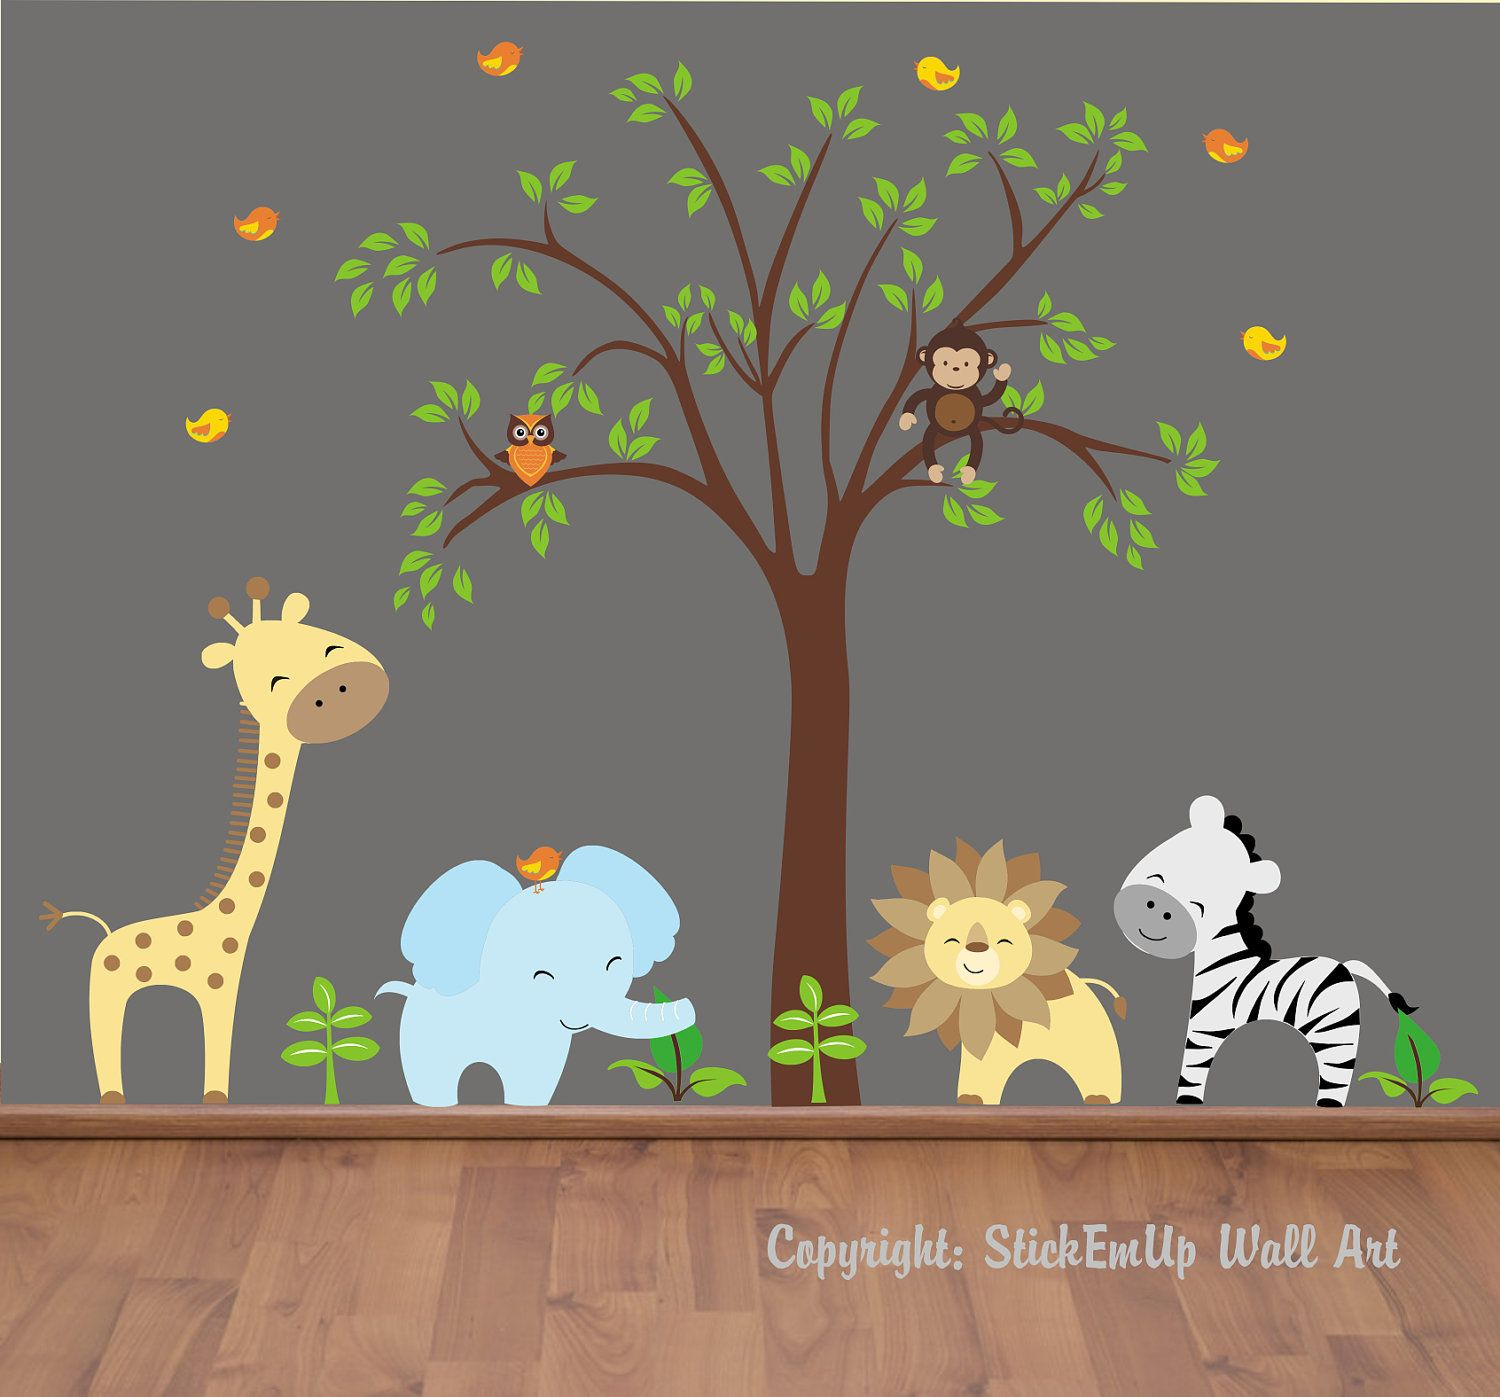 Baby Wall Decals Nursery Wall Decals Jungle Wall Decals - Jungle themed nursery wall decals